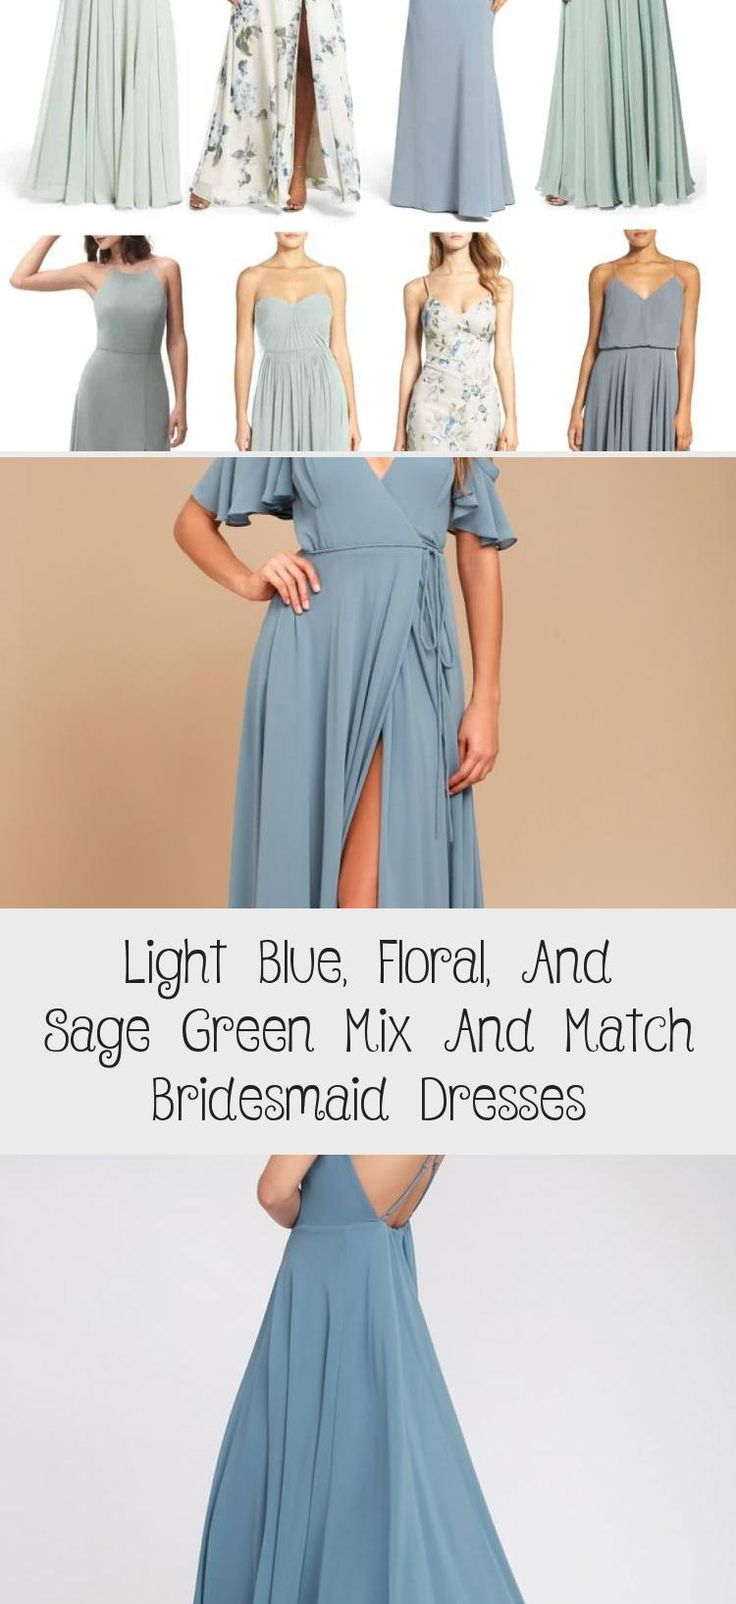 Blue floral and mist sage green mismatched bridesmaid dresses by Jenny Yoo #BridesmaidDressesPurple #PinkBridesmaidDresses #BridesmaidDressesMint #PeachBridesmaidDresses #LilacBridesmaidDresses